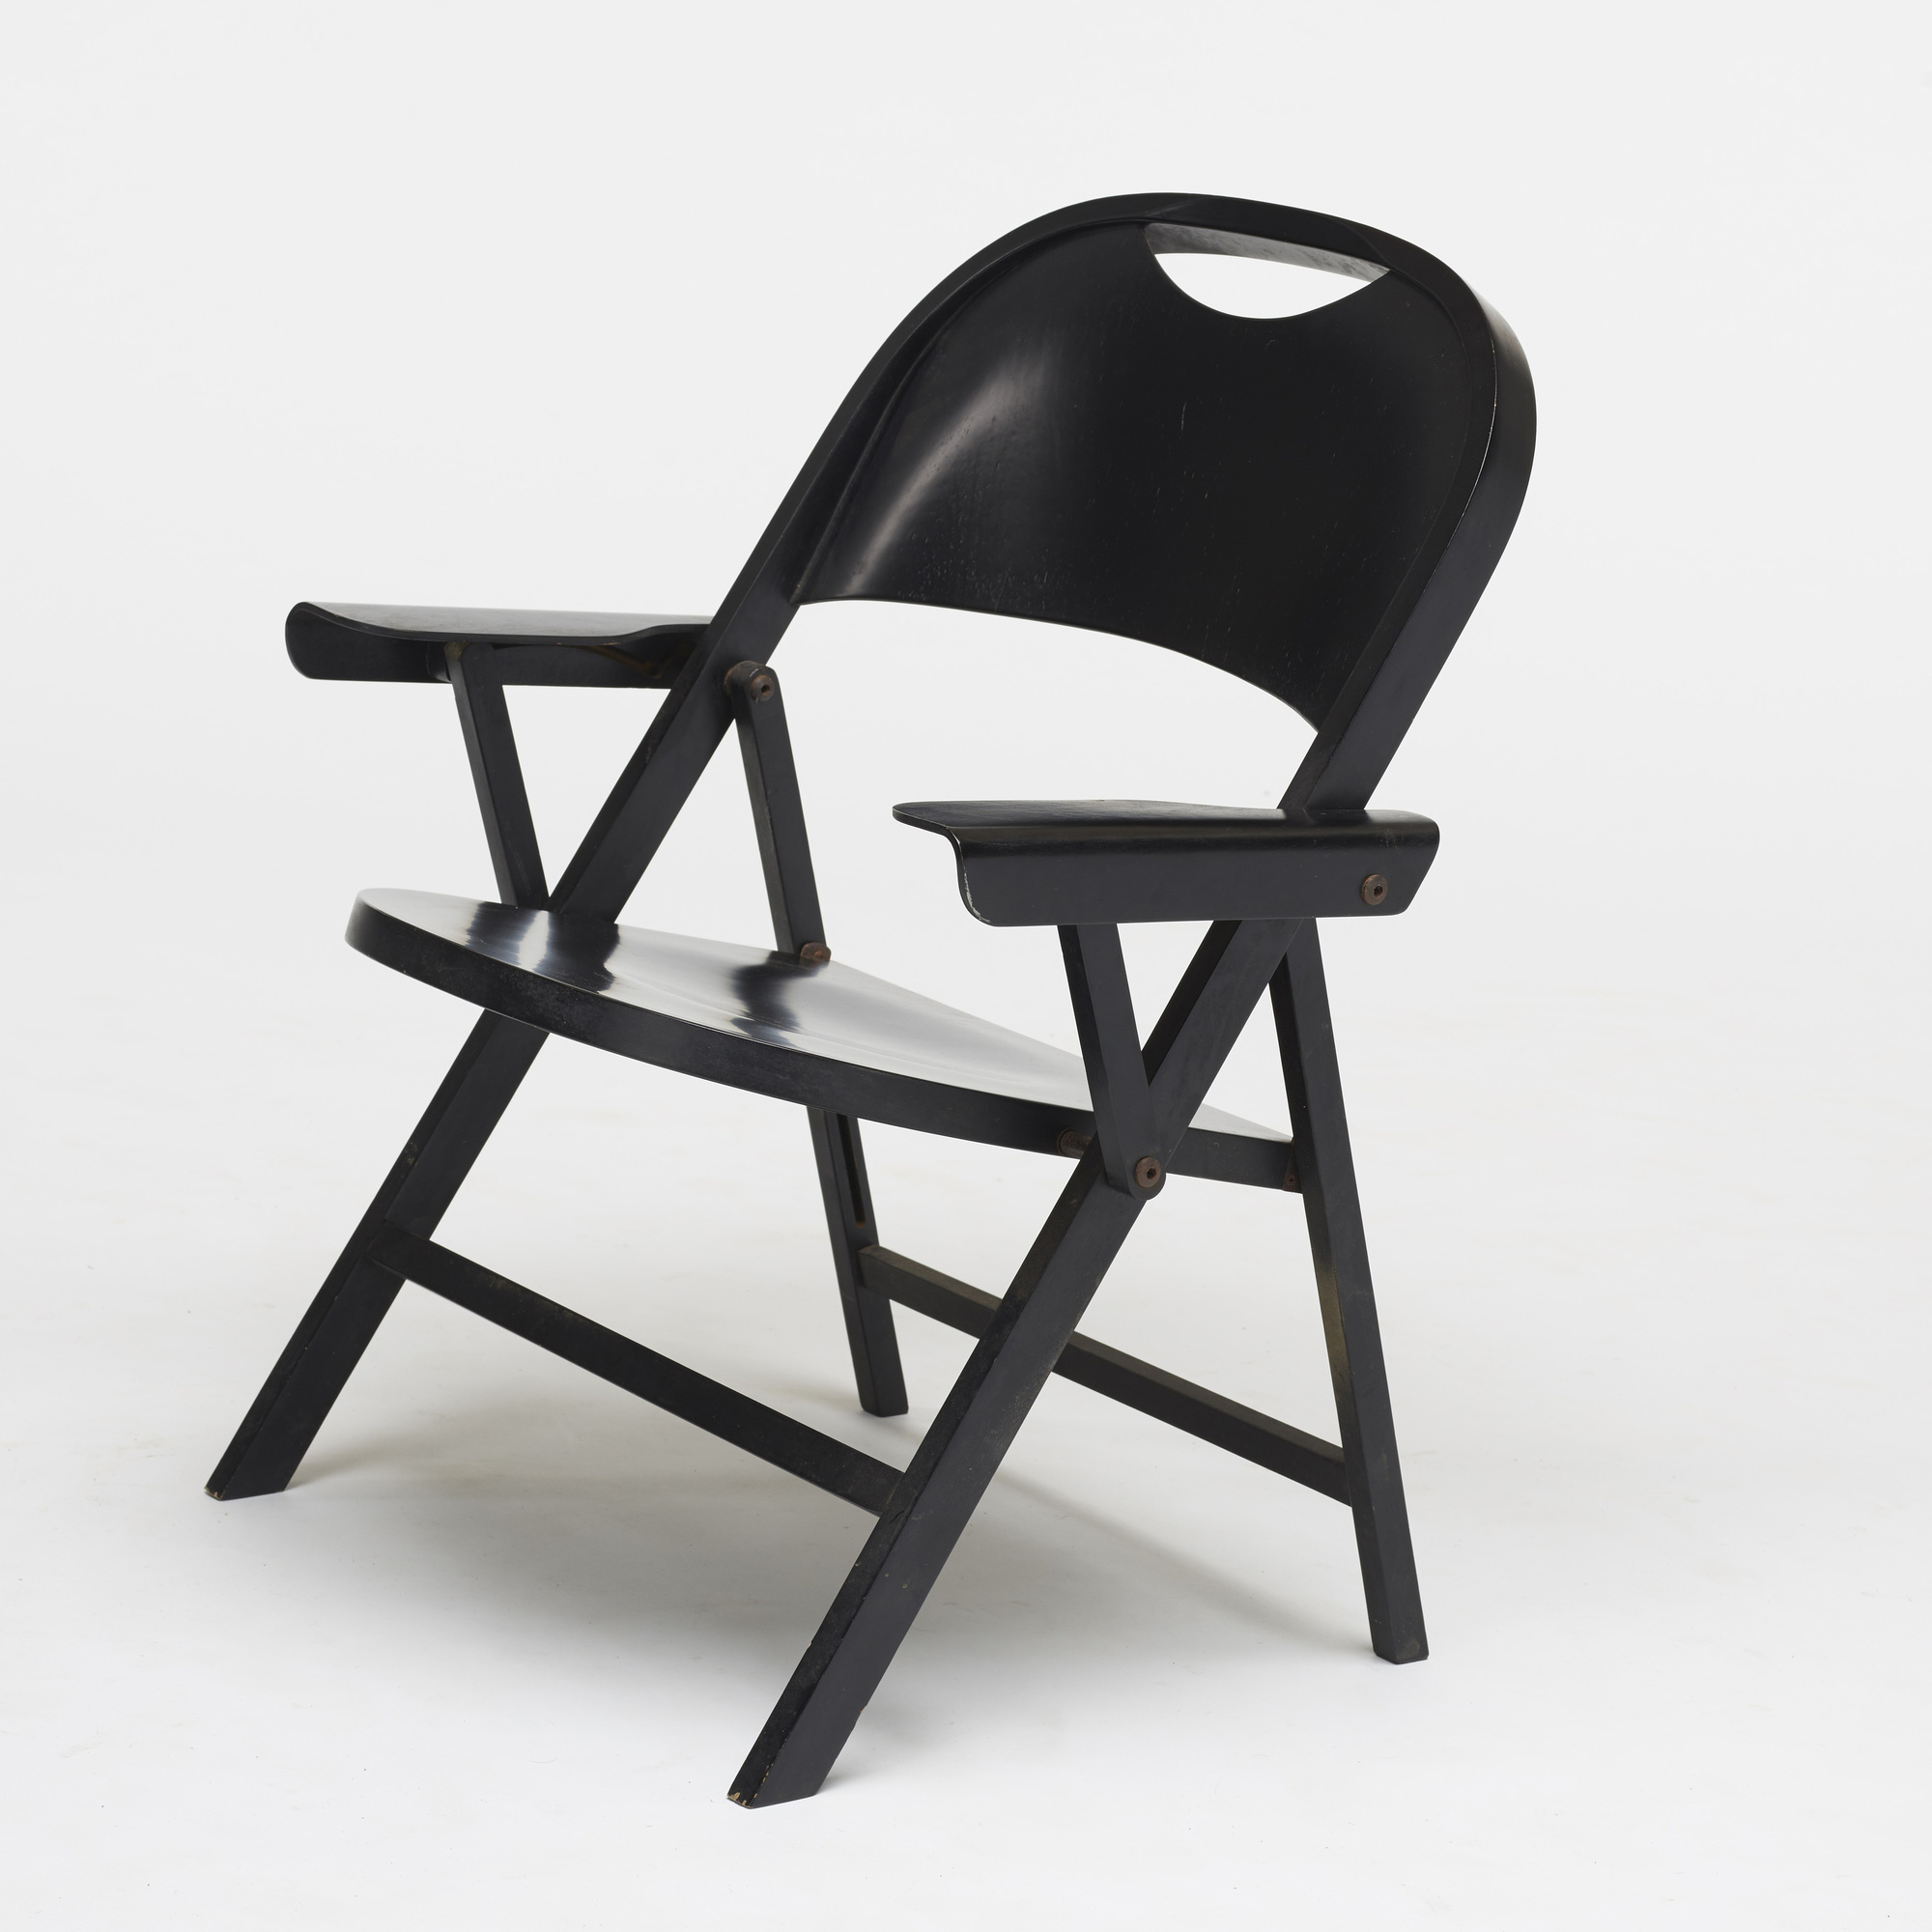 196: Achille and Pier Giacomo Castiglioni / Ginevra folding chairs, pair (3 of 3)